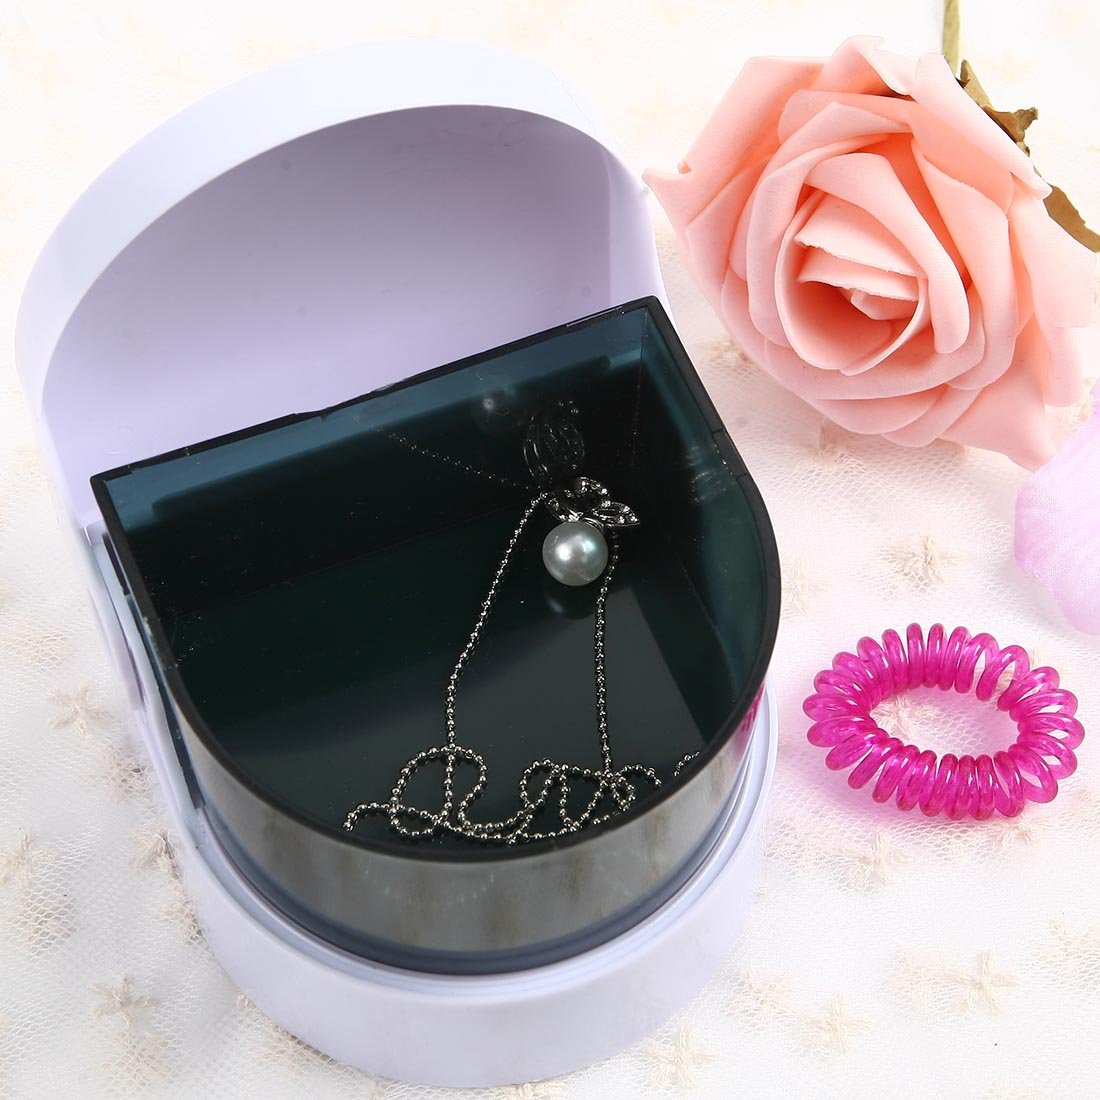 Mini contact lens Contact lenses box automatic cleaning ultra sonic cleaner myopia glasses Ultrasonic cleaning machineMini contact lens Contact lenses box automatic cleaning ultra sonic cleaner myopia glasses Ultrasonic cleaning machine